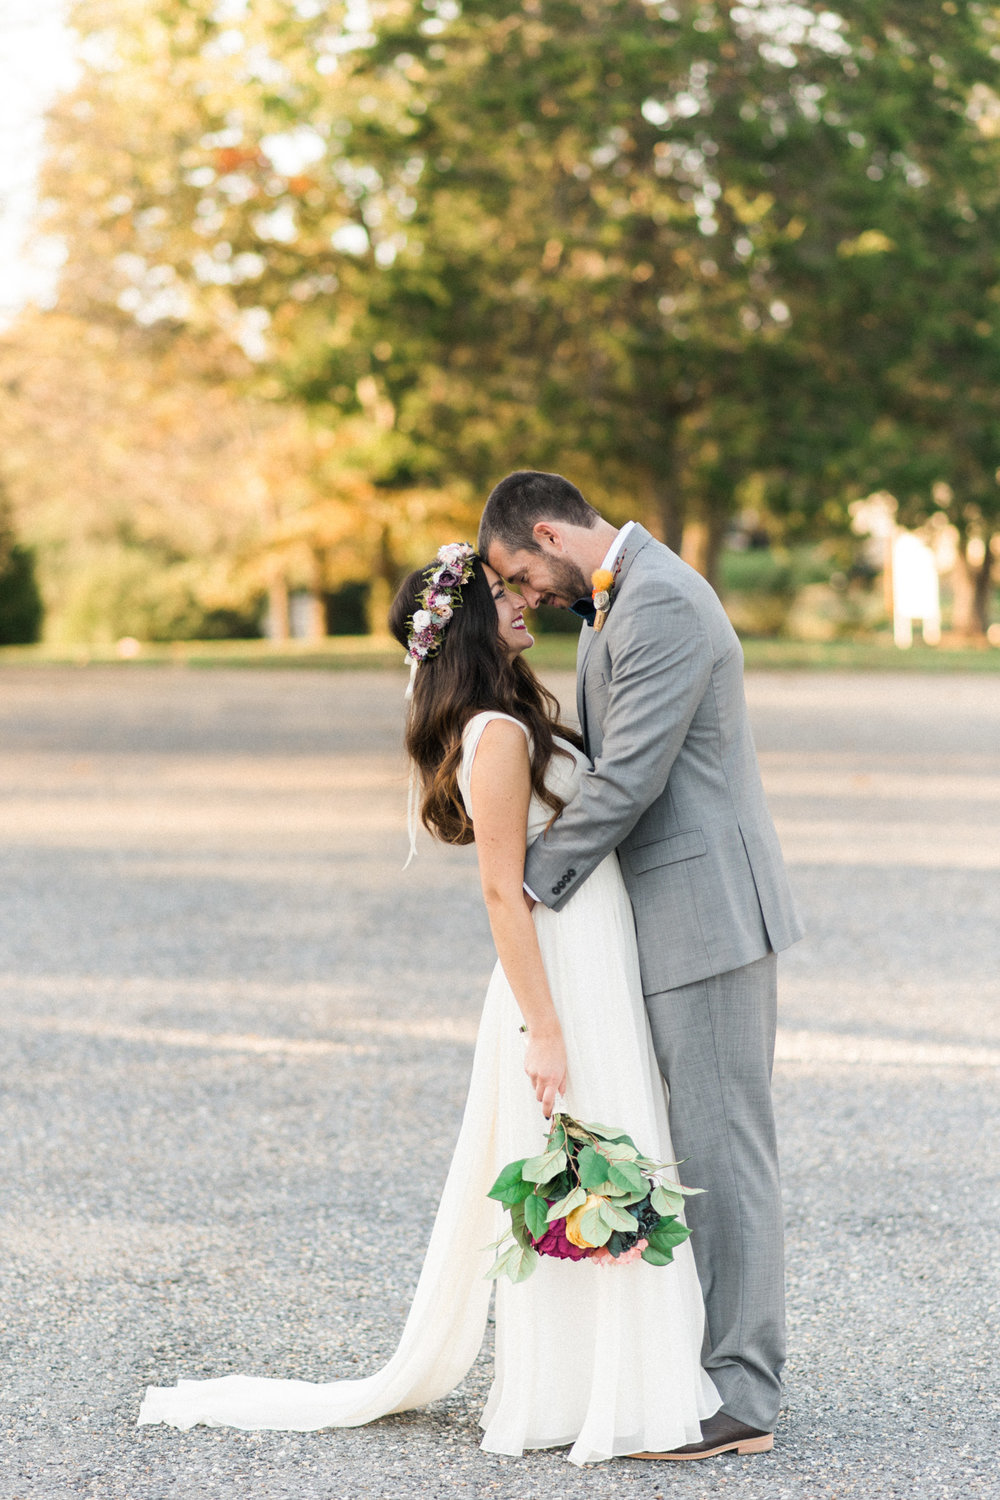 The_Trivium_Estate_Forest_VA_Wedding_Flower_Crown_boho_wedding_classic_wedding_Virginia_Wedding_photographer067.jpg